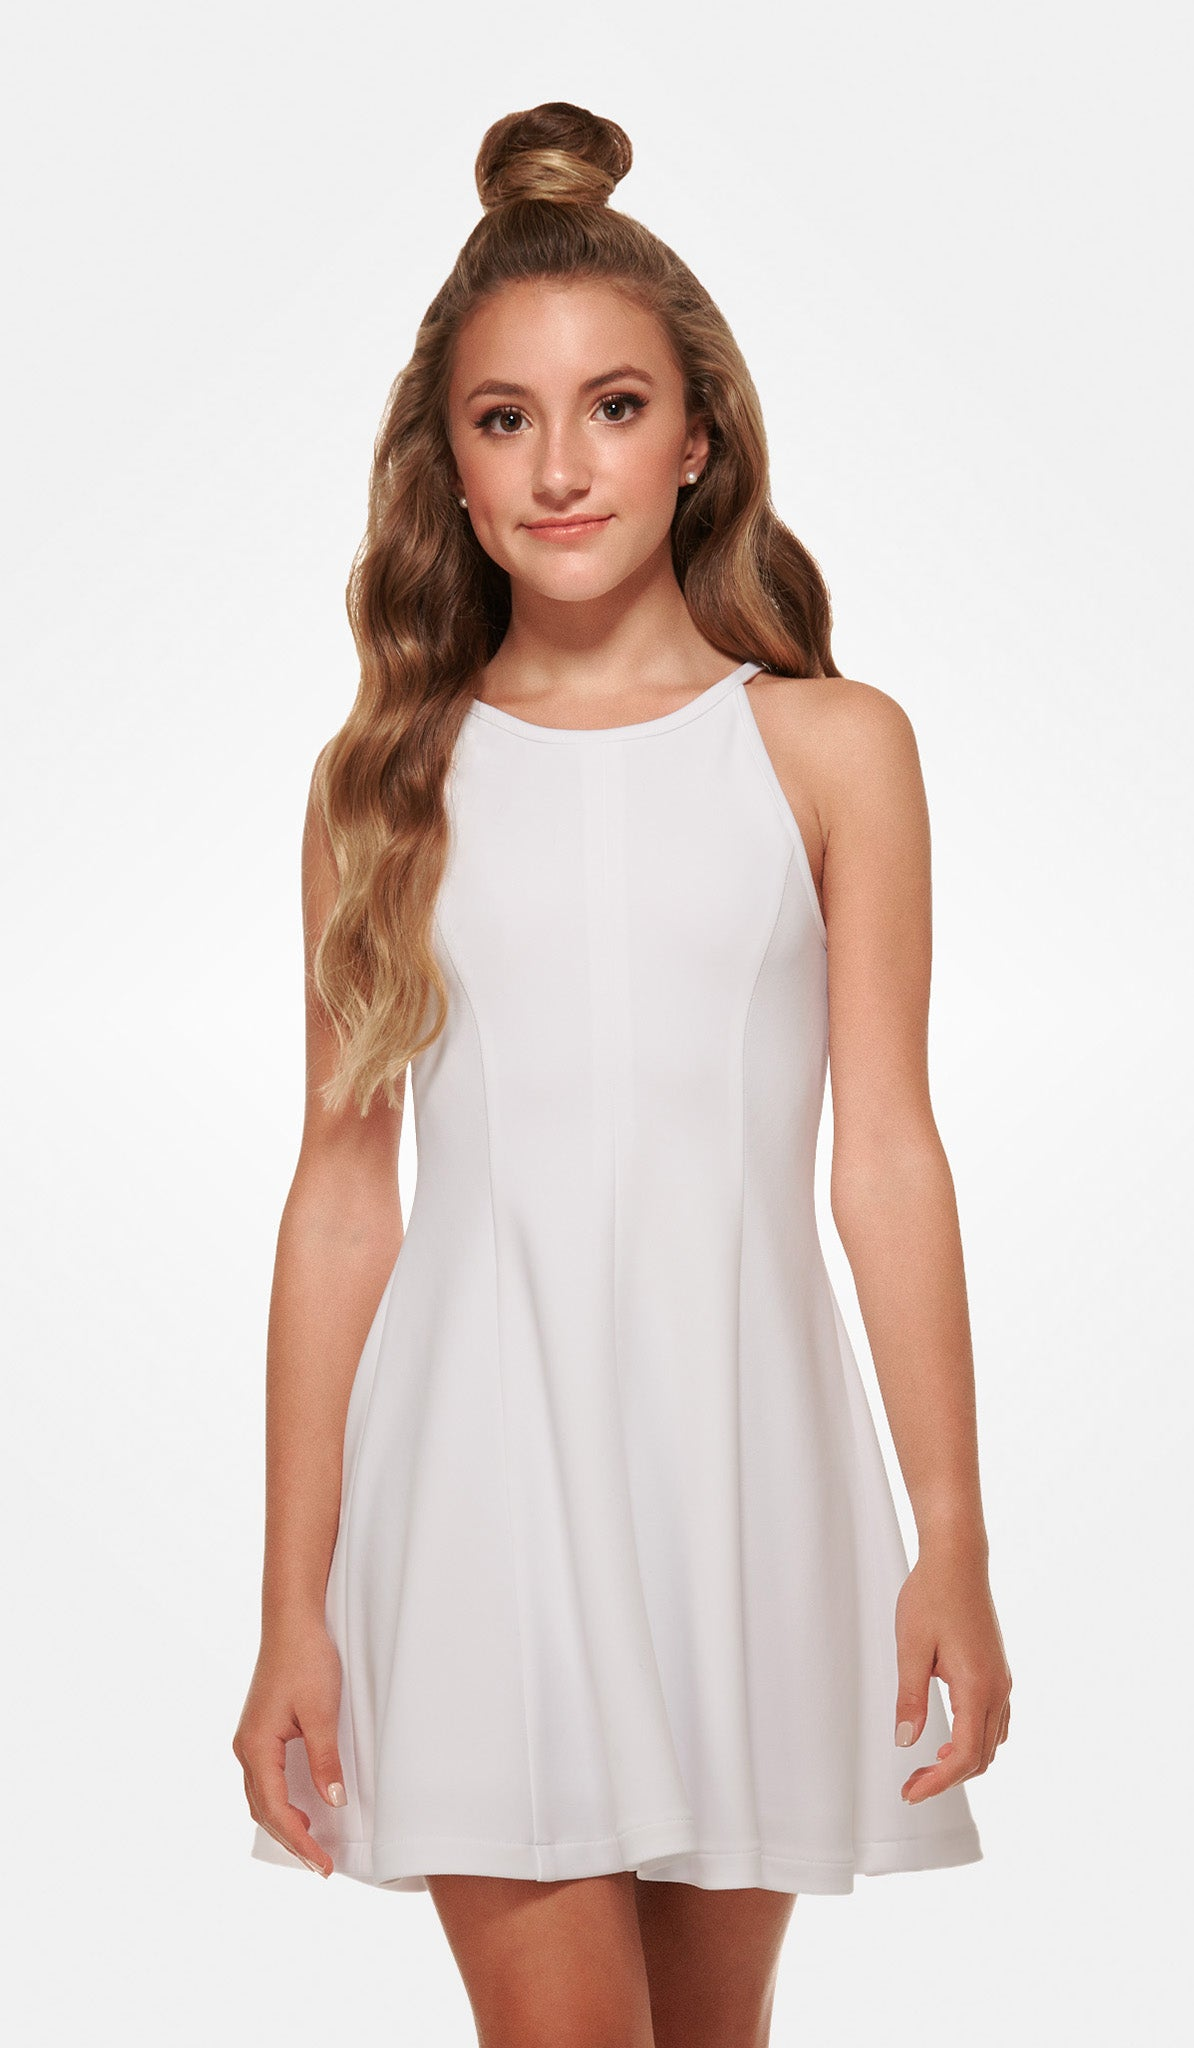 The Sally Miller Serena Dress - White textured stretch knit fit and flare dress with zipper at back